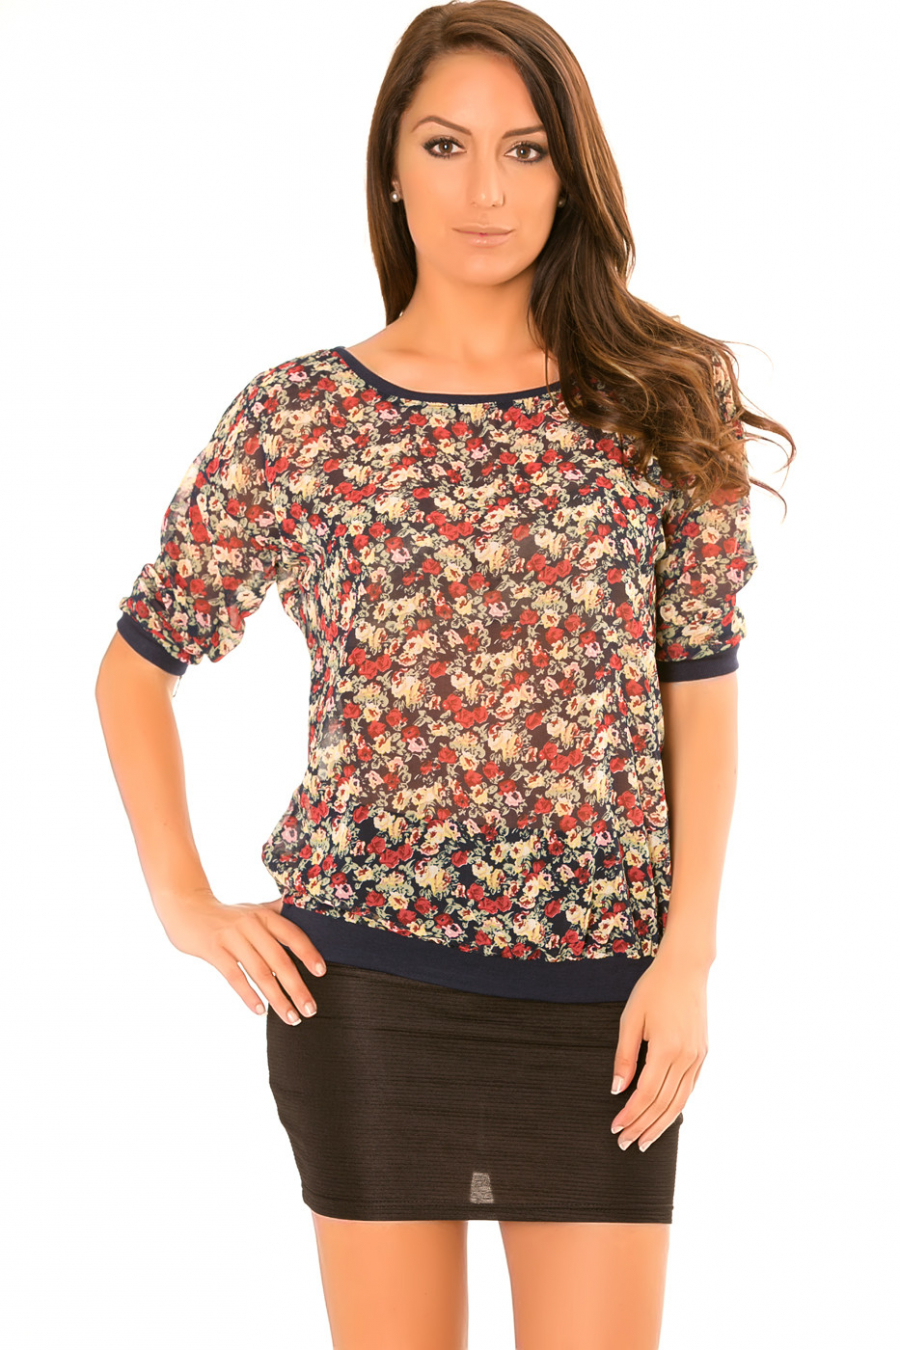 Top with predominantly navy sheer. Flower patterns. 1660